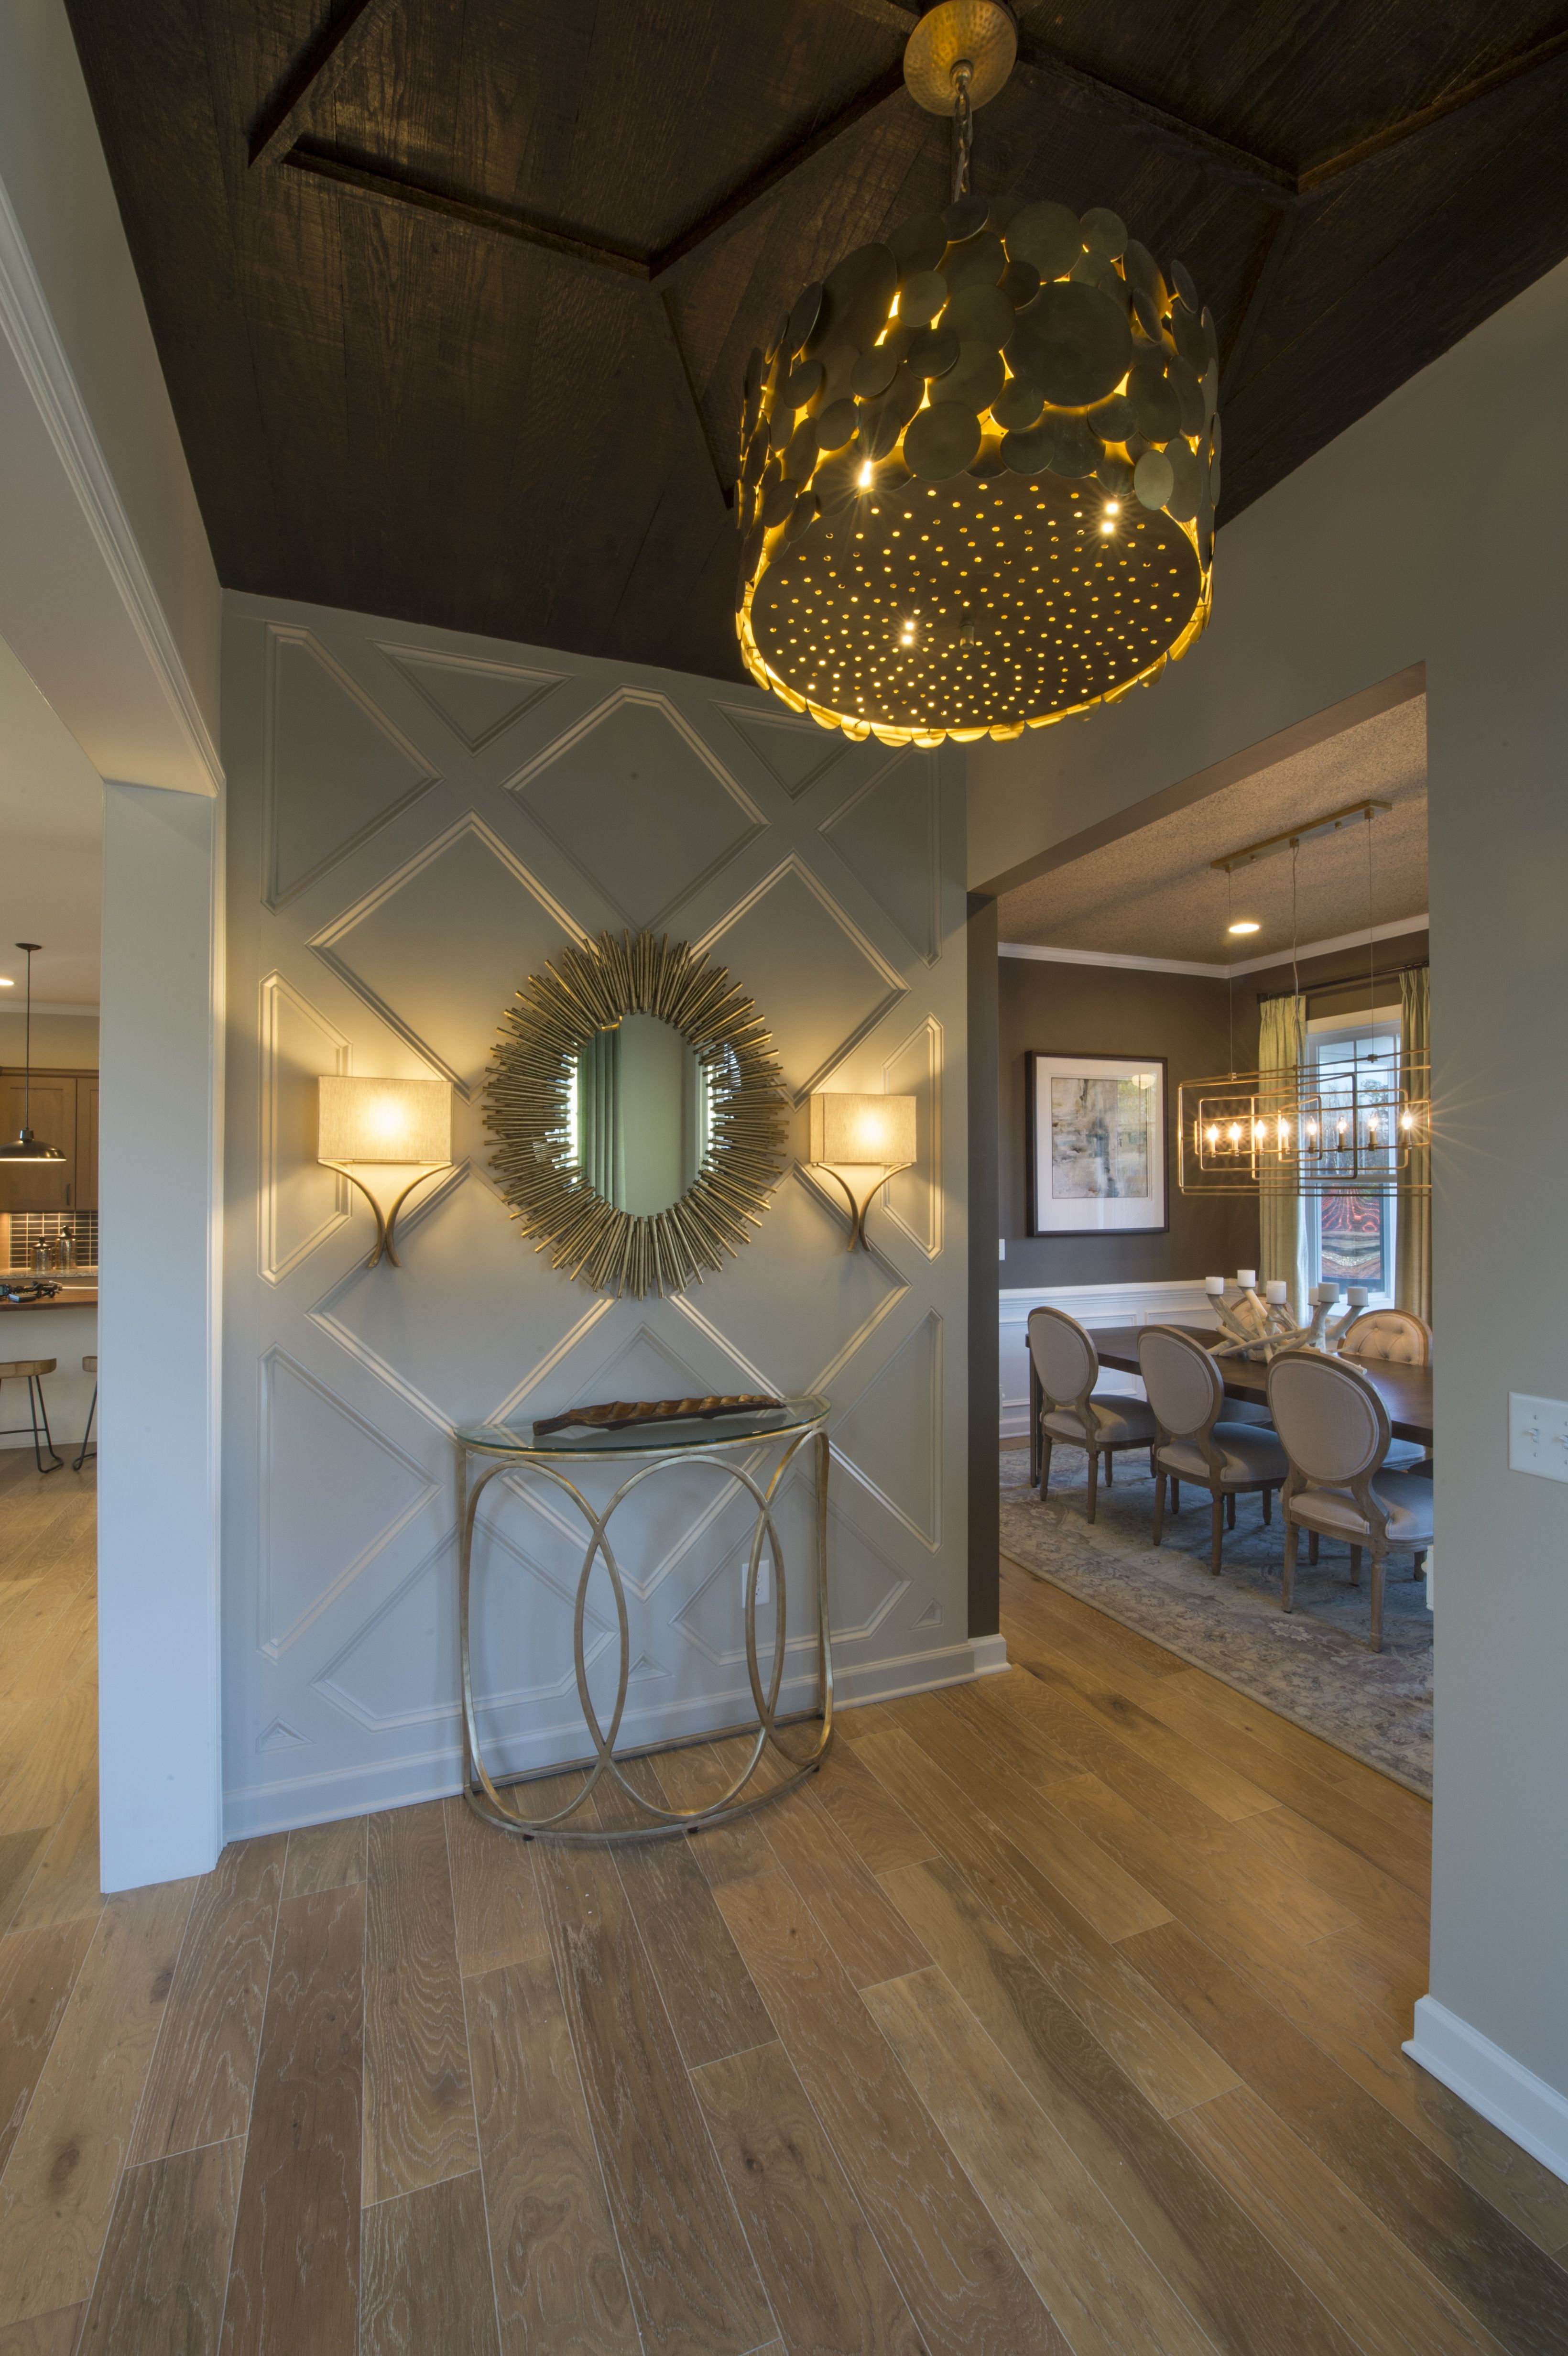 A Geometric Accent Wall Gold Starburst Mirror And Large Bold Light Fixture Adds Dimension Drama And Accent Wall Entryway Starburst Wall Decor Entryway Wall